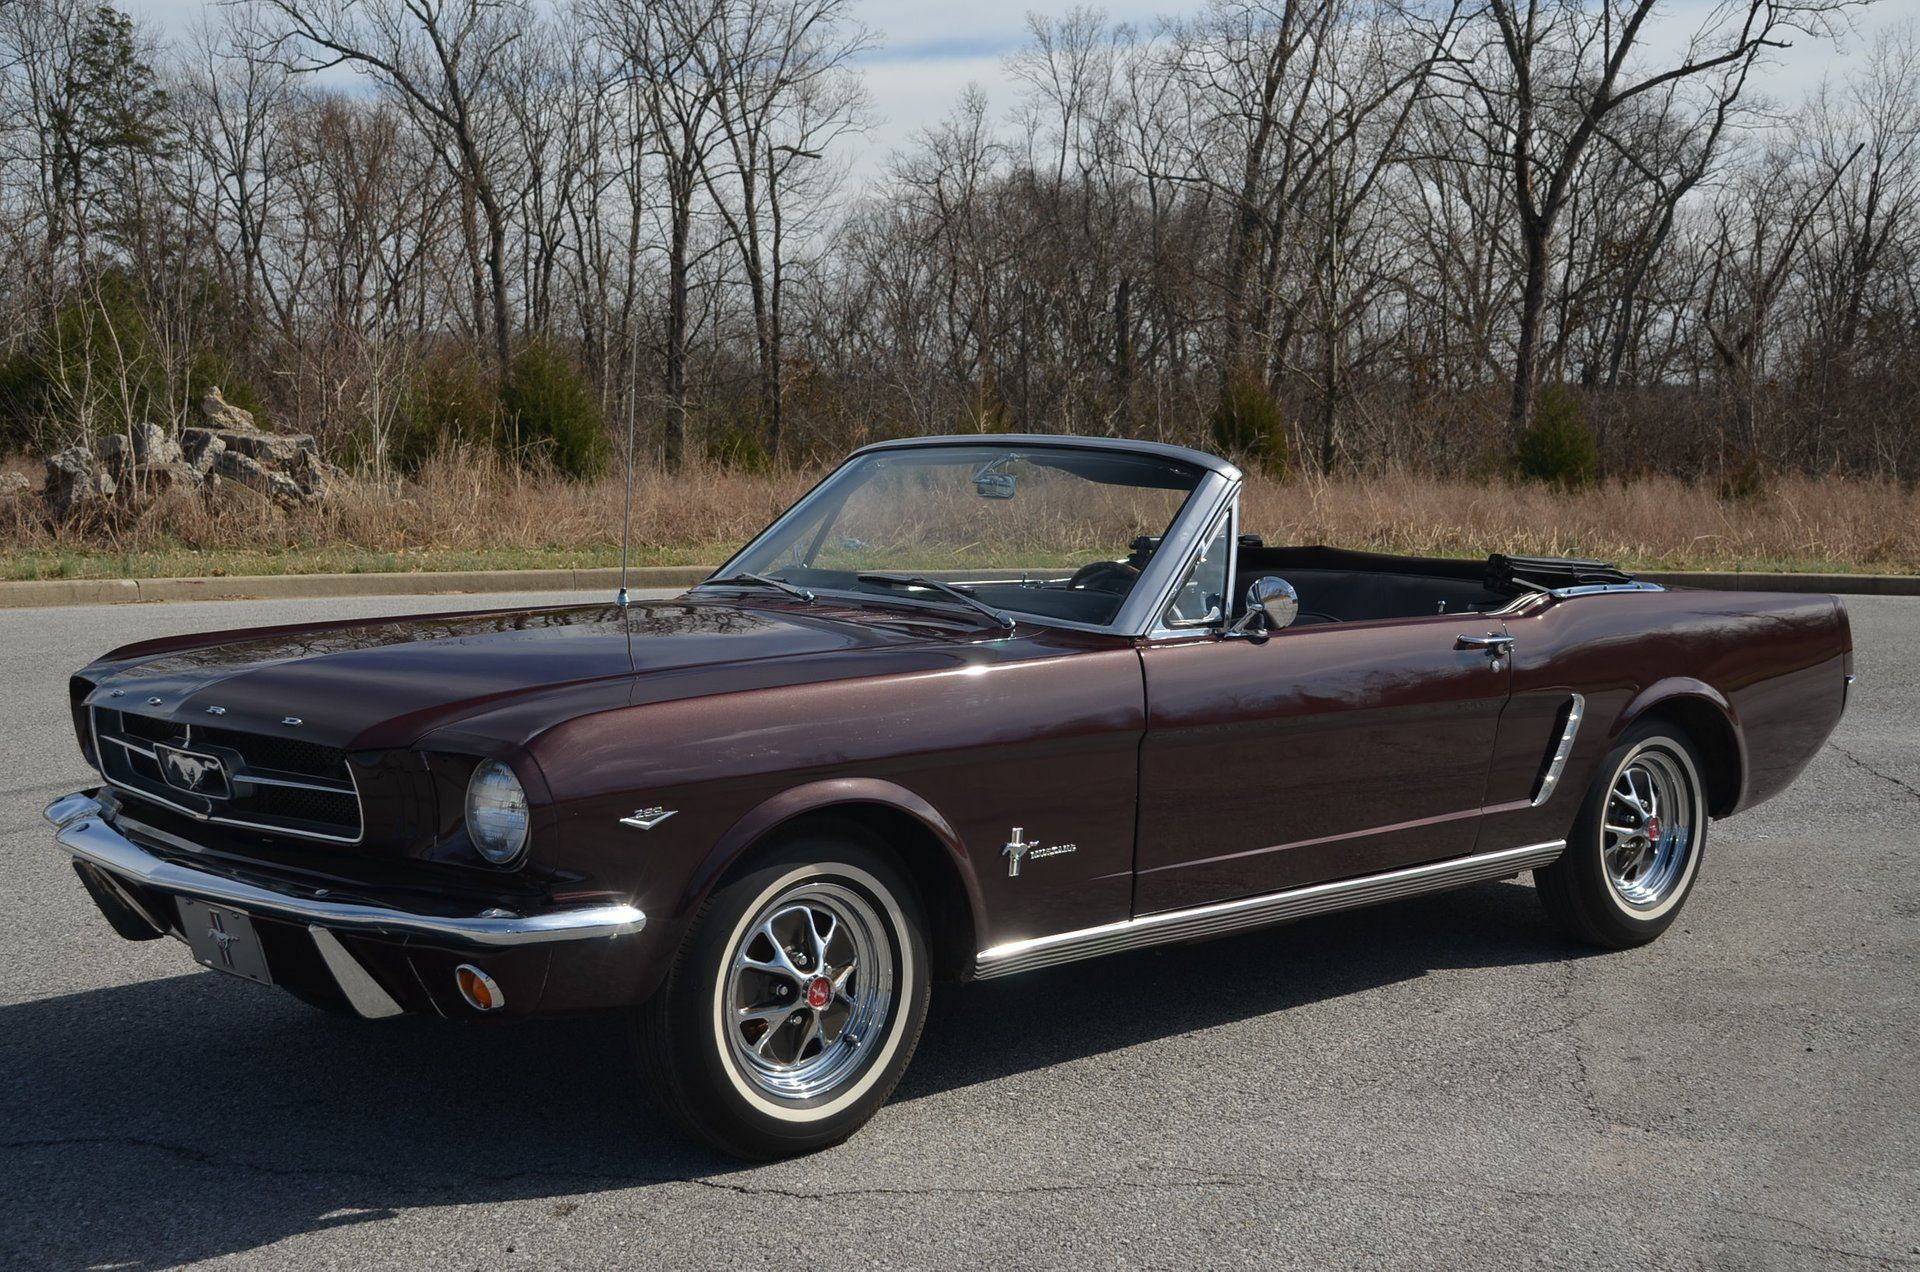 Cruise Through Town In This Lovely 1965 Ford Mustang Convertible